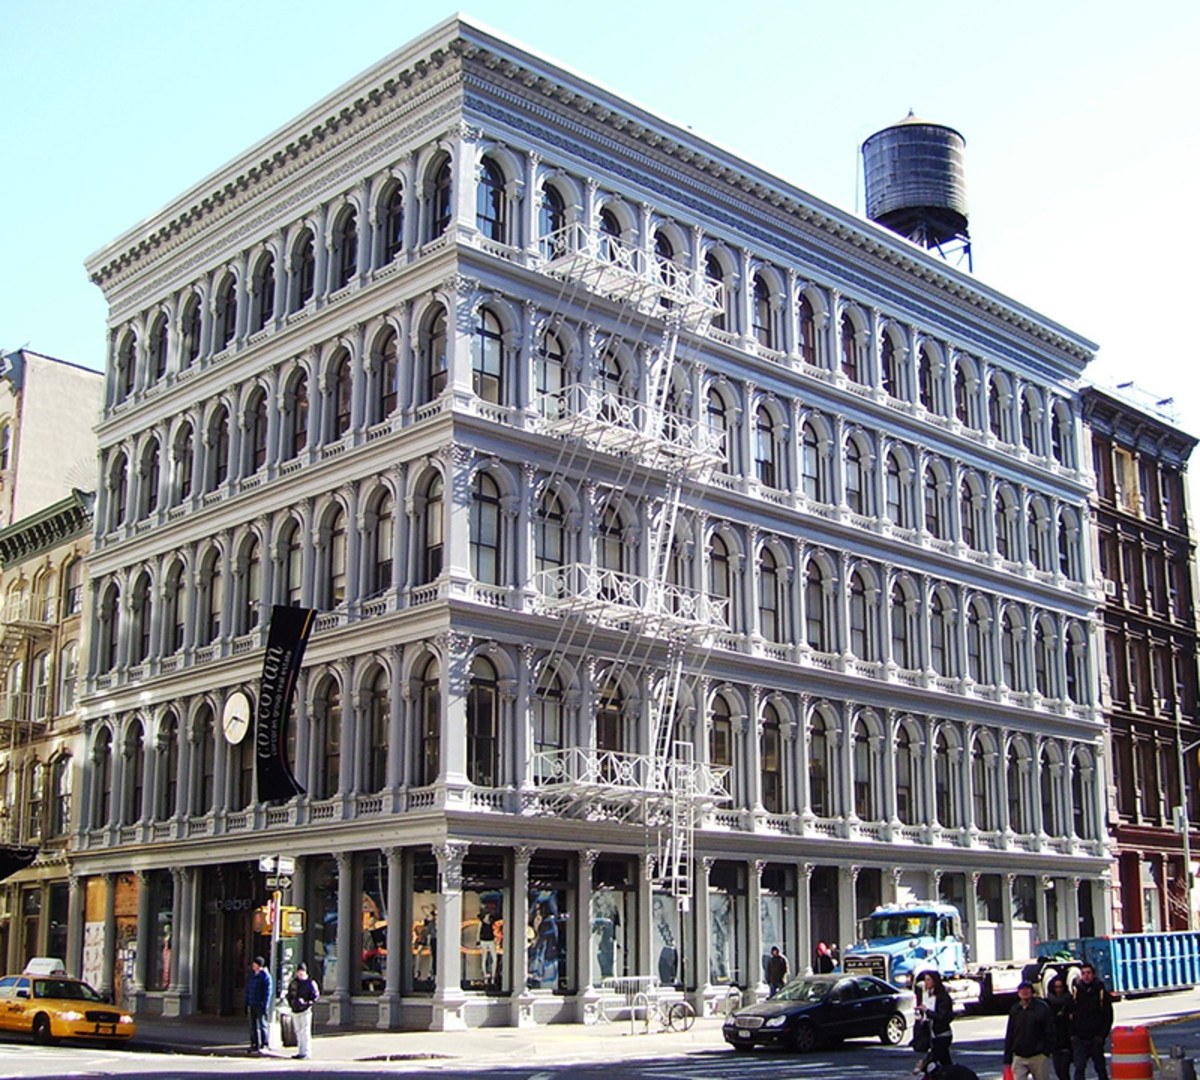 Prefab buildings don't have to be cold and dreary. The façade of this 19th-century commercial building in New York's SoHo District is constructed from modular cast-iron units, and possesses the visual richness and complexity that people still find pleasing.